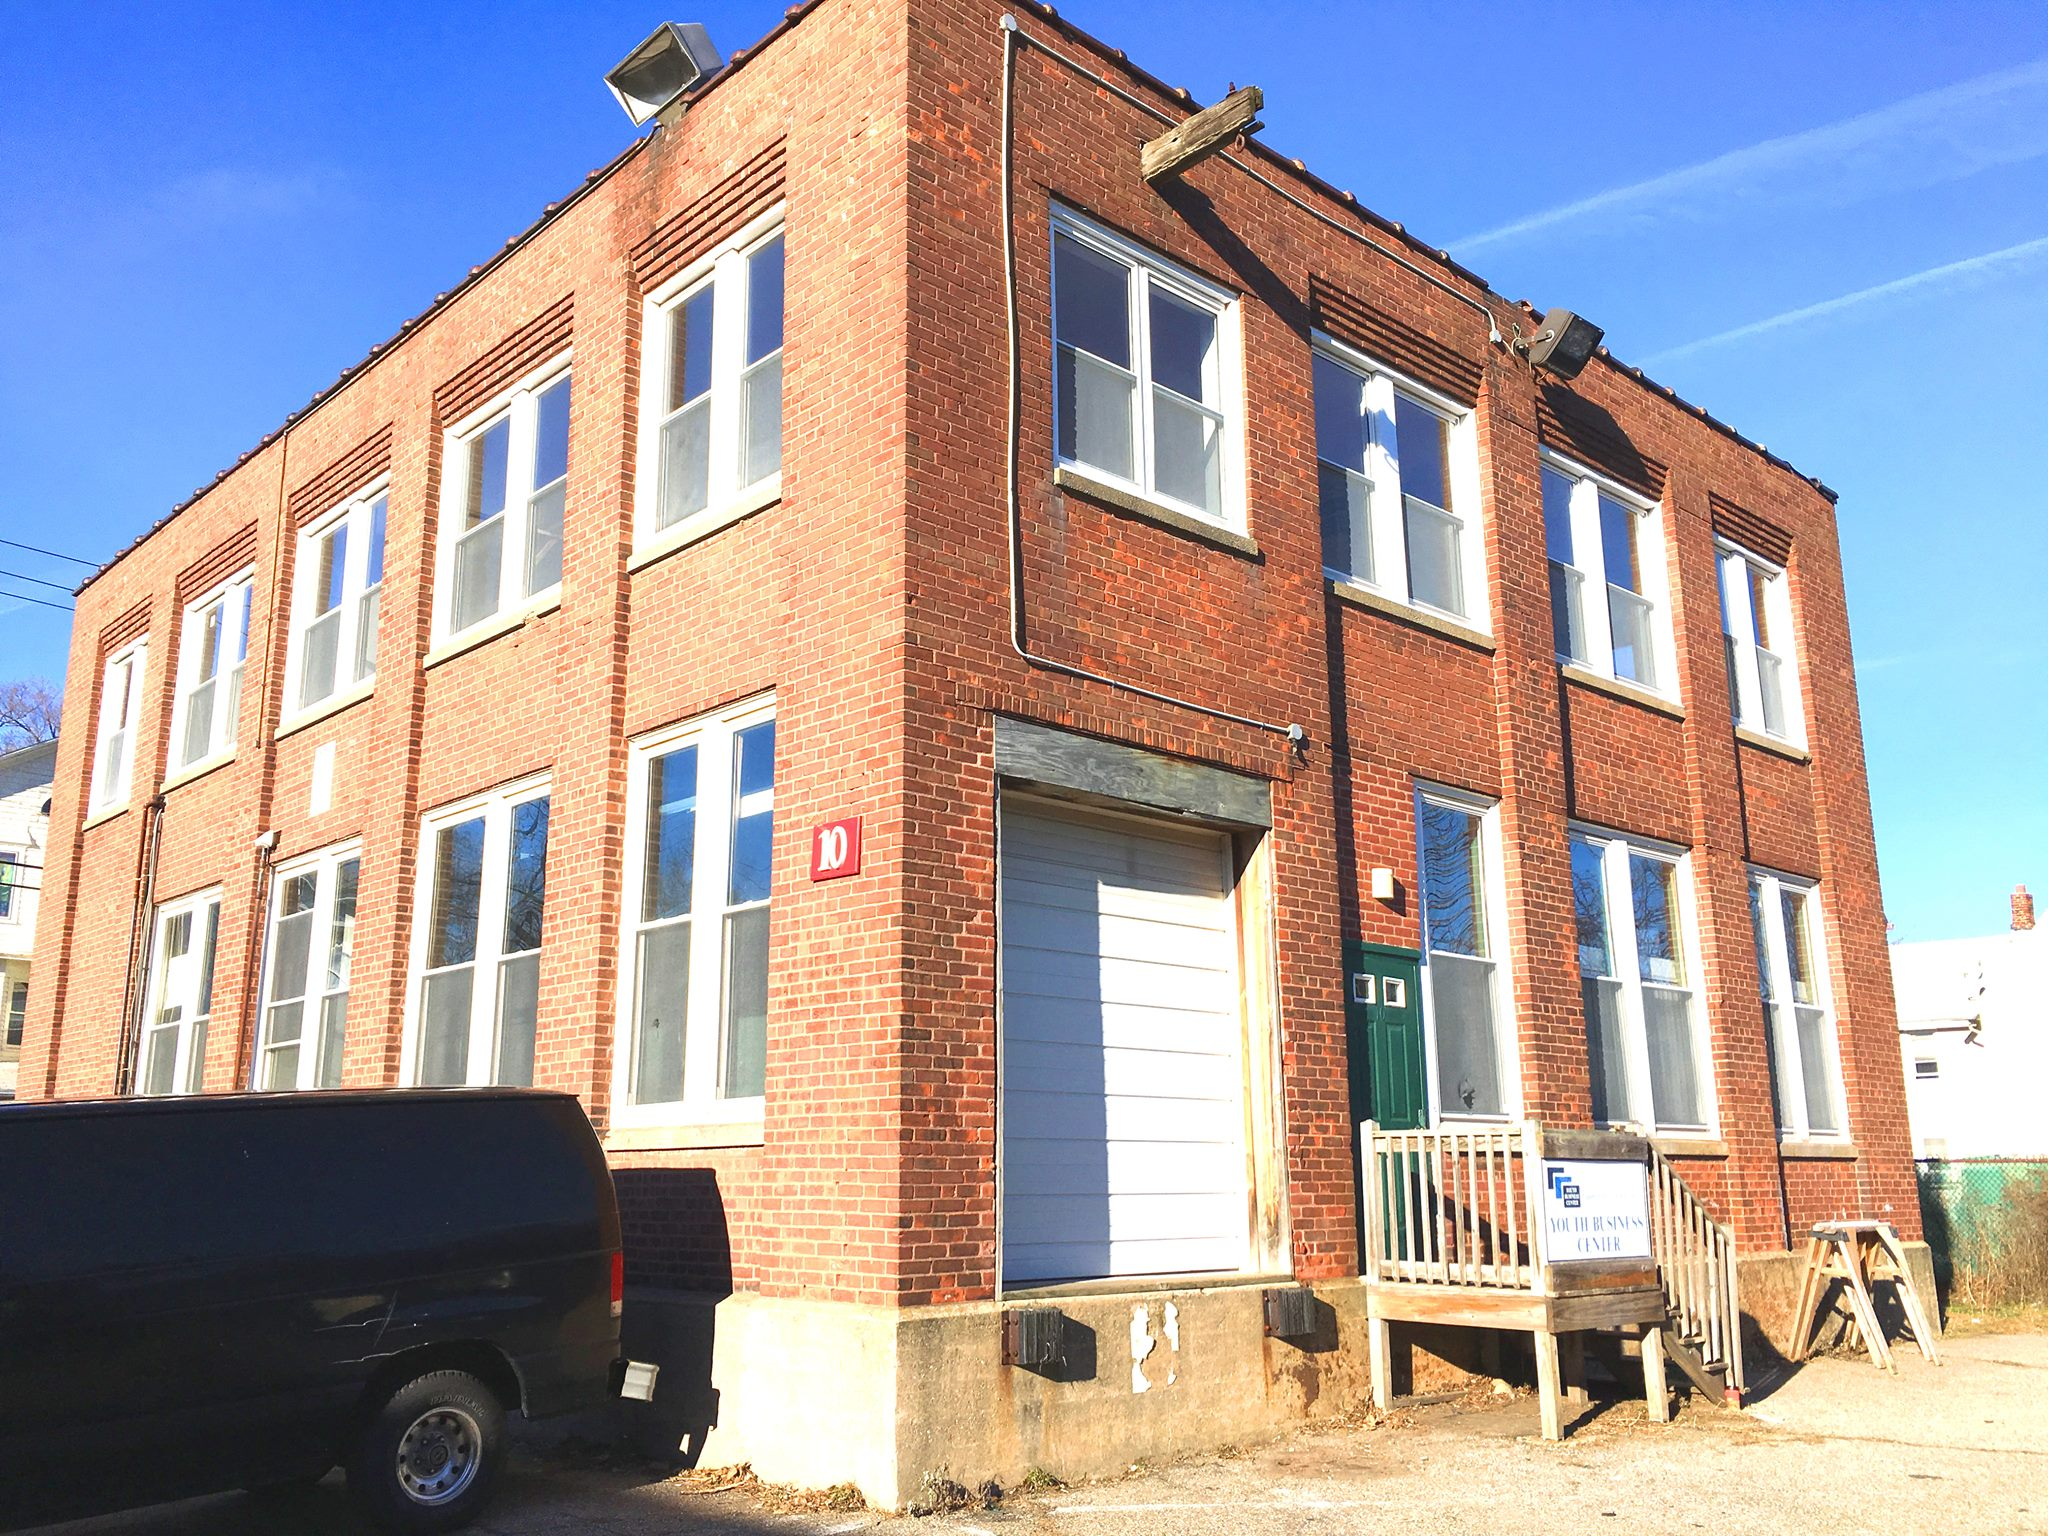 Warehouse for rent in Bridgeport, CT - Commercial Space for Lease ...